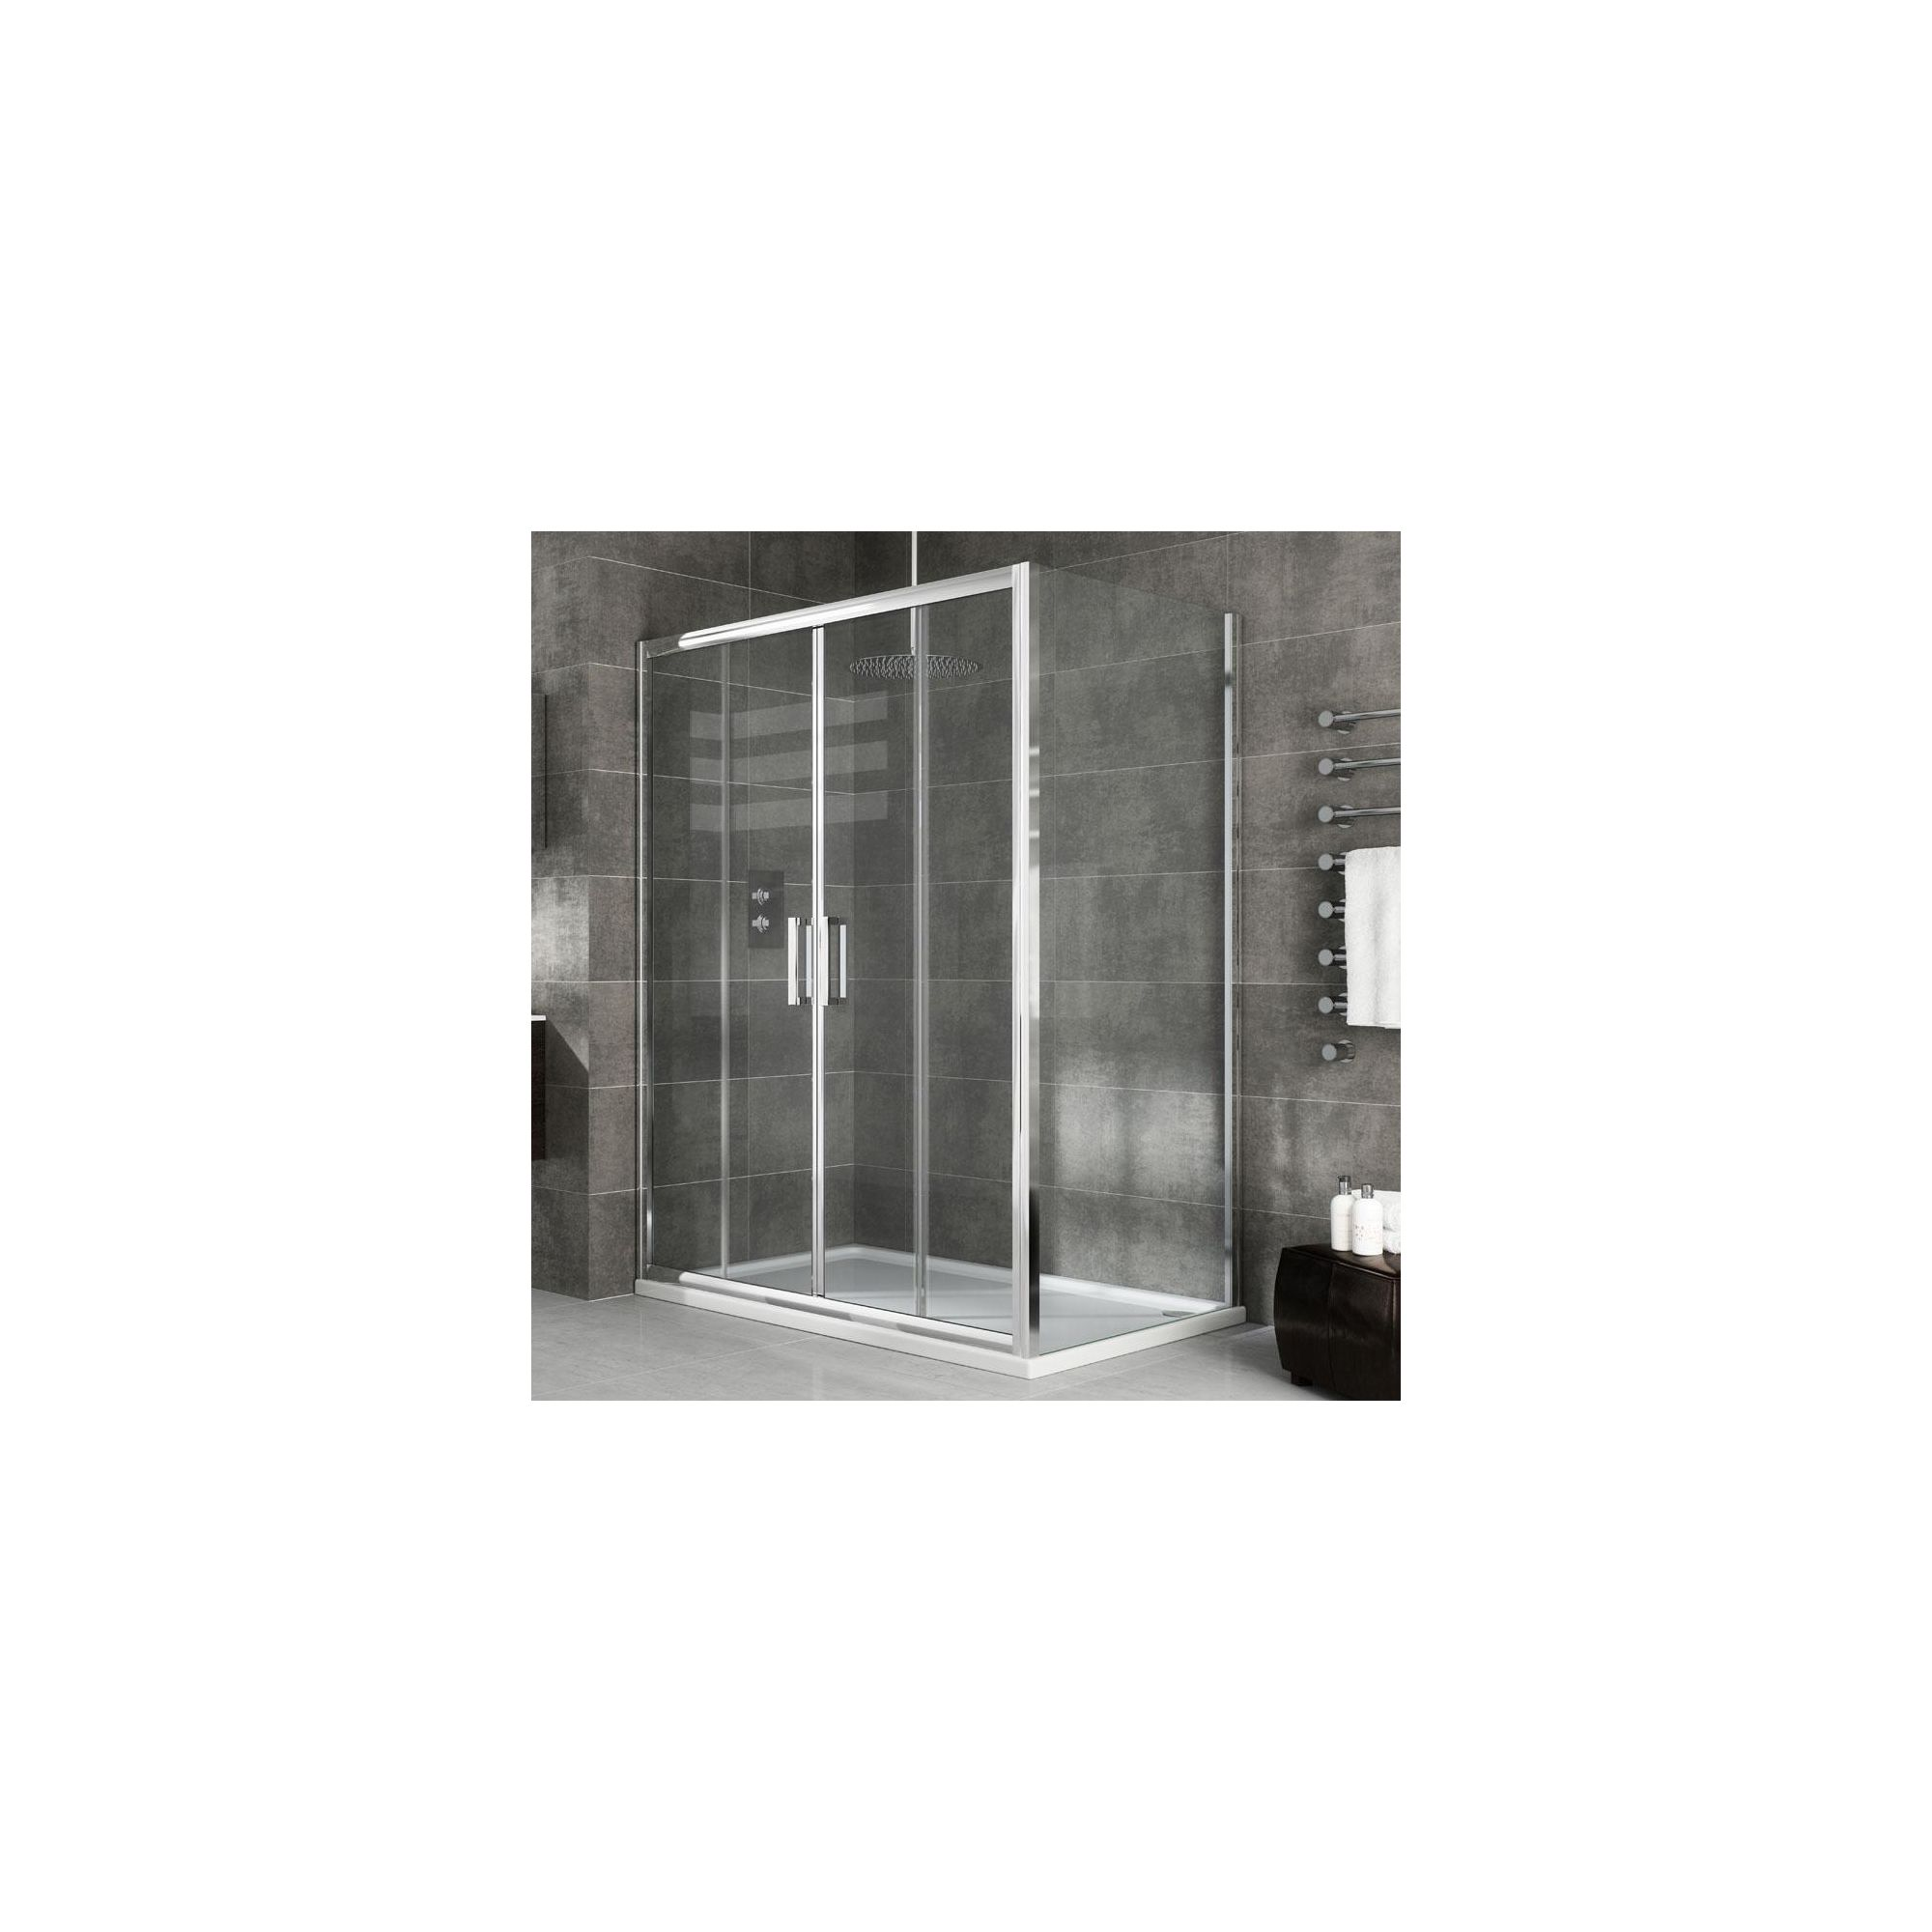 Elemis Eternity Two-Panel Jumbo Sliding Door Shower Enclosure, 1400mm x 900mm, 8mm Glass, Low Profile Tray at Tesco Direct